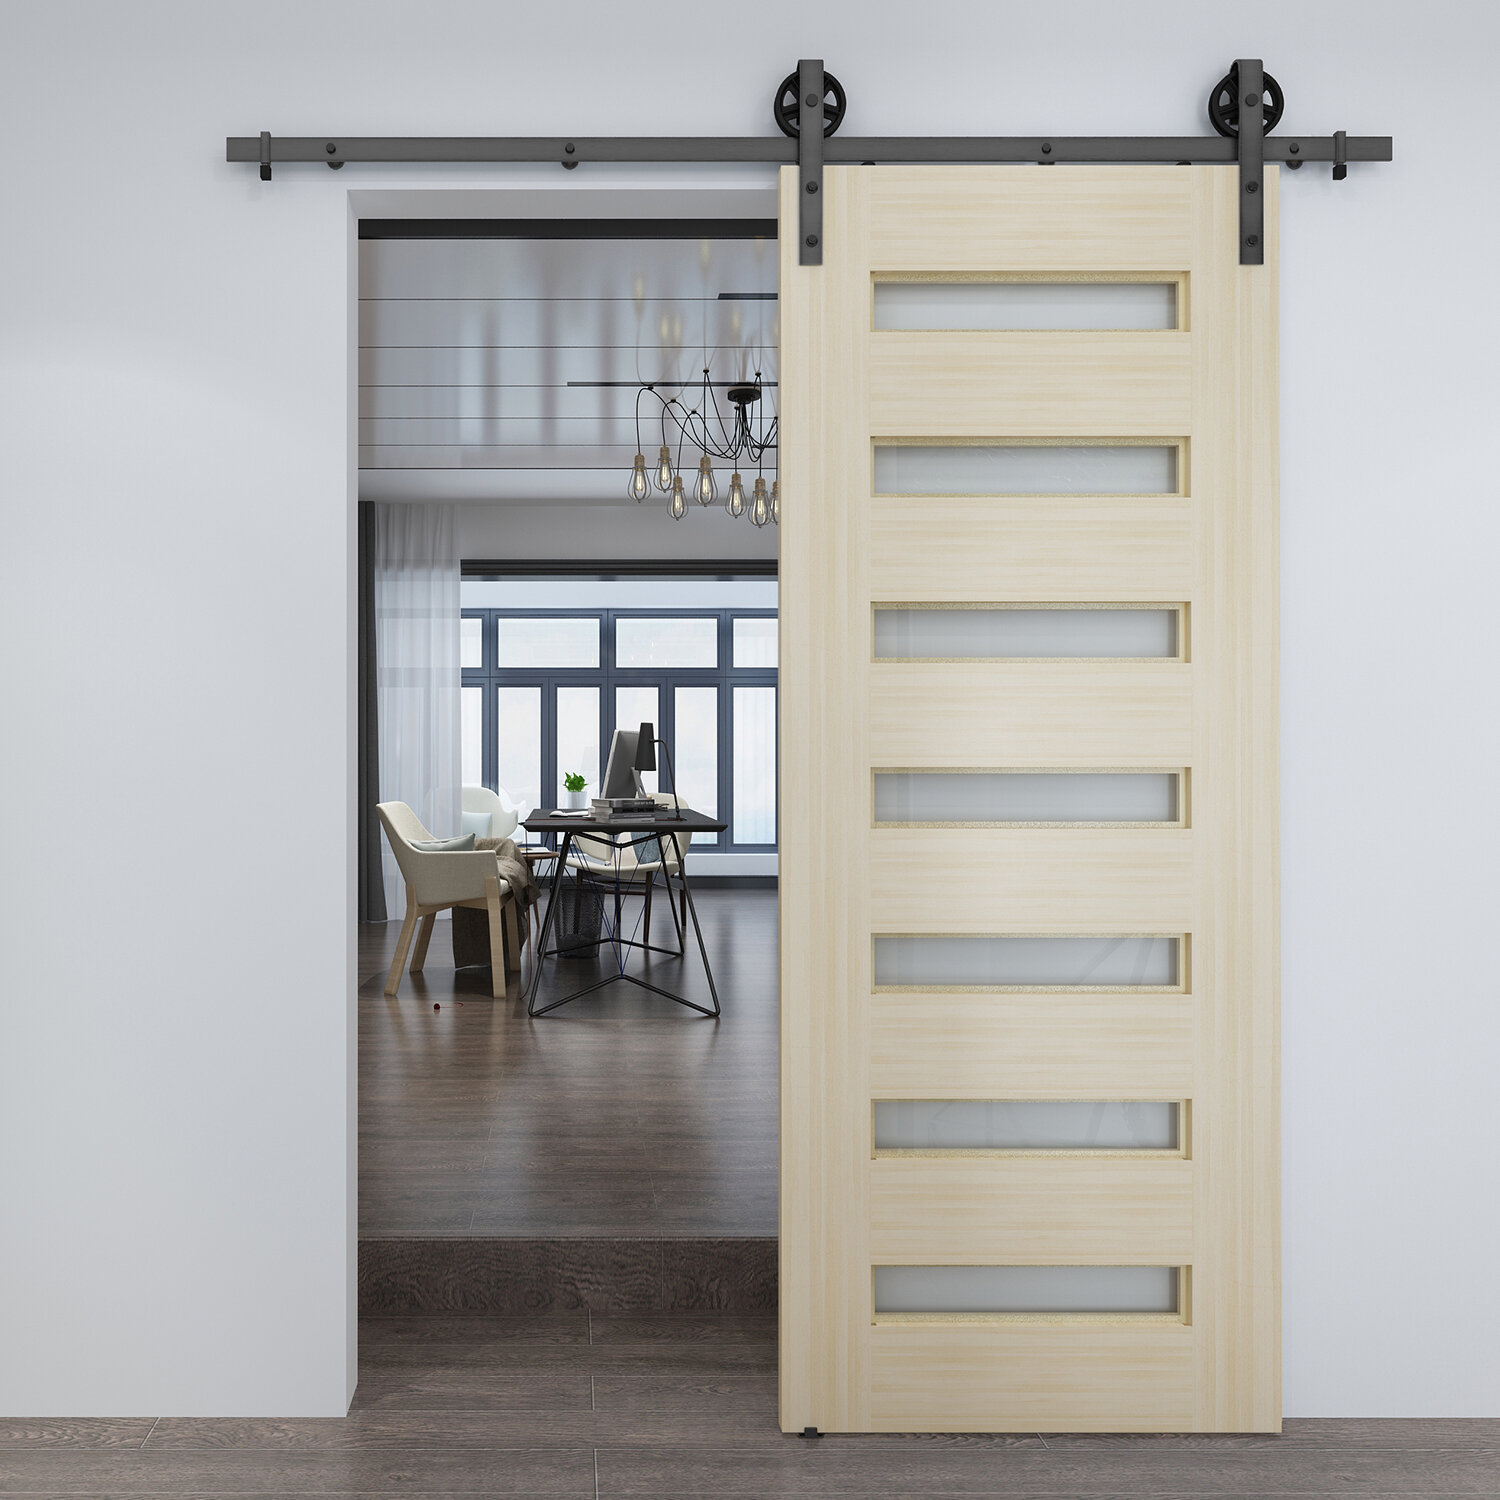 Colonial Elegance Frosted Glass Barn Door Without Installation Hardware Kit Reviews